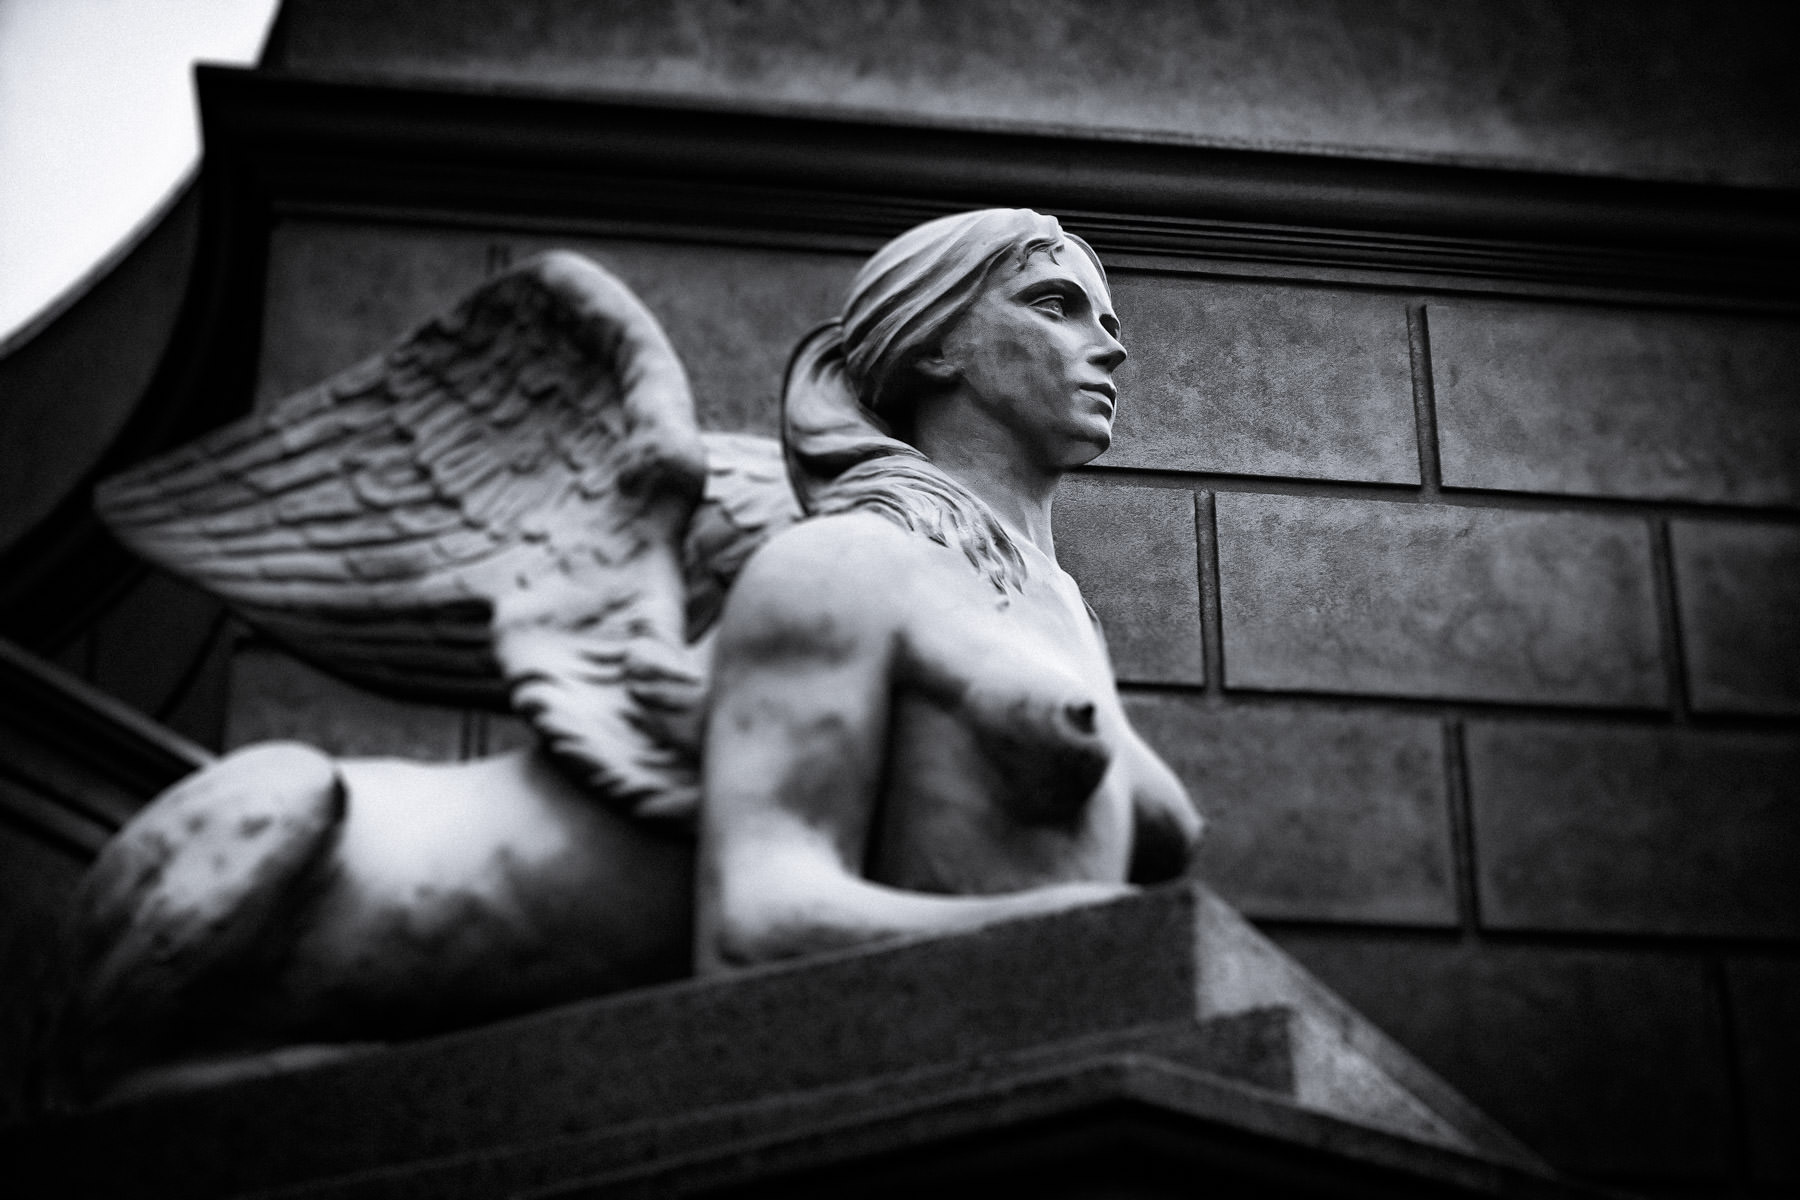 A statue of a sphinx at Caesars Palace, Las Vegas.